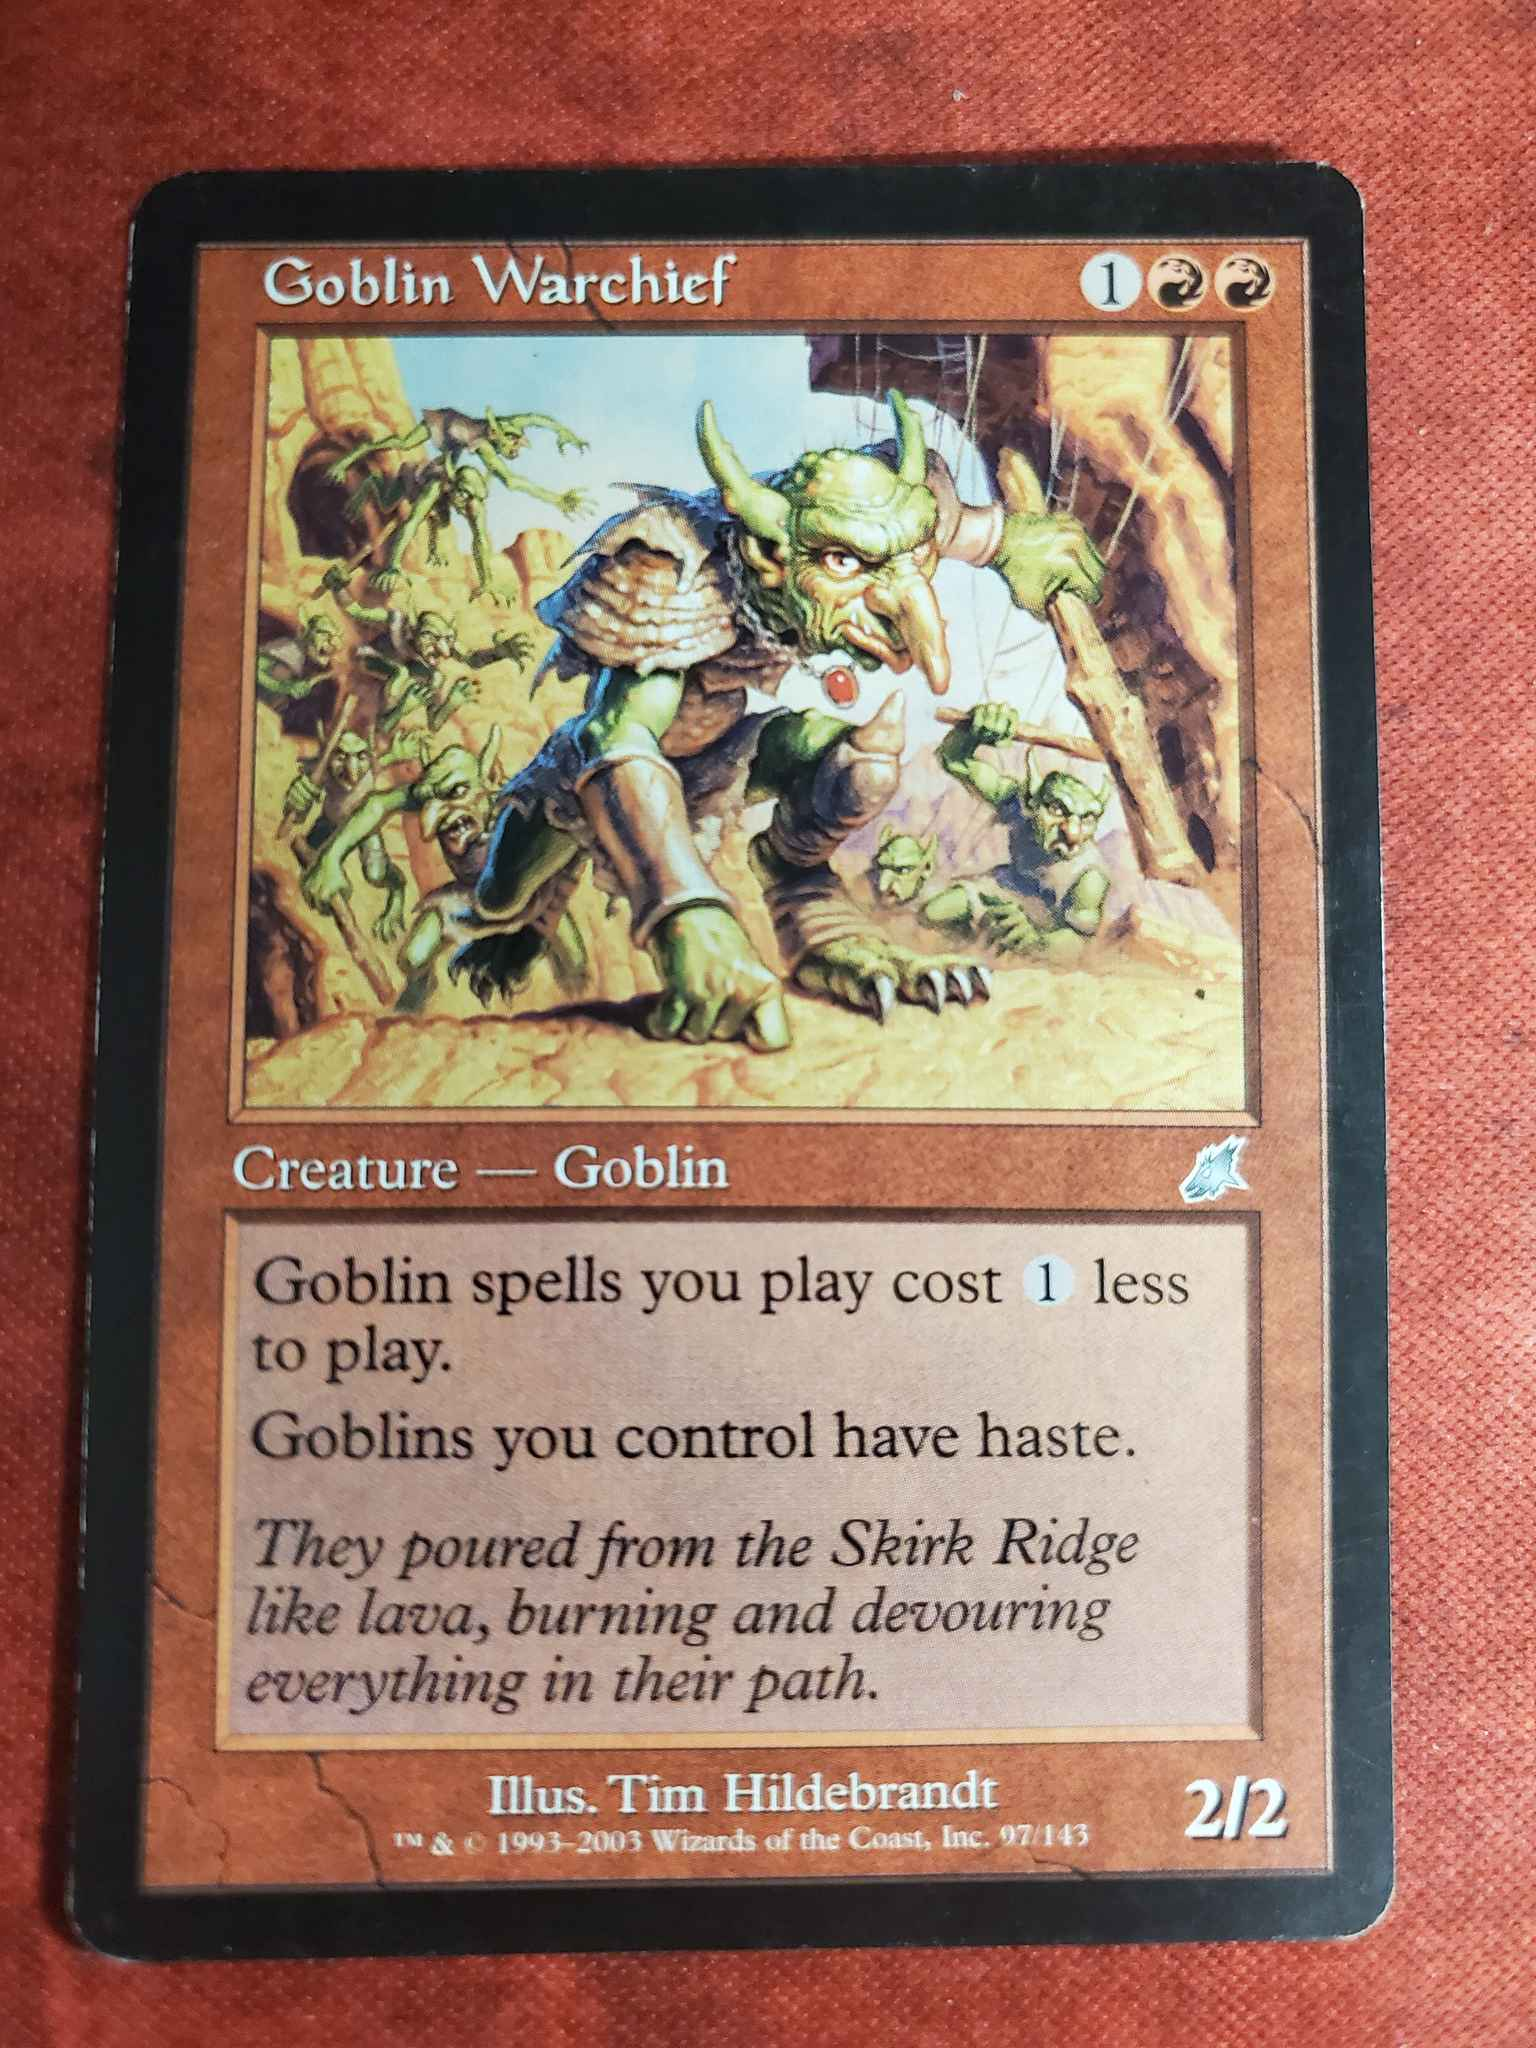 Goblin Warchief Goblin Warchief Scourge Magic The Gathering Online Gaming Store For Cards Miniatures Singles Packs Booster Boxes